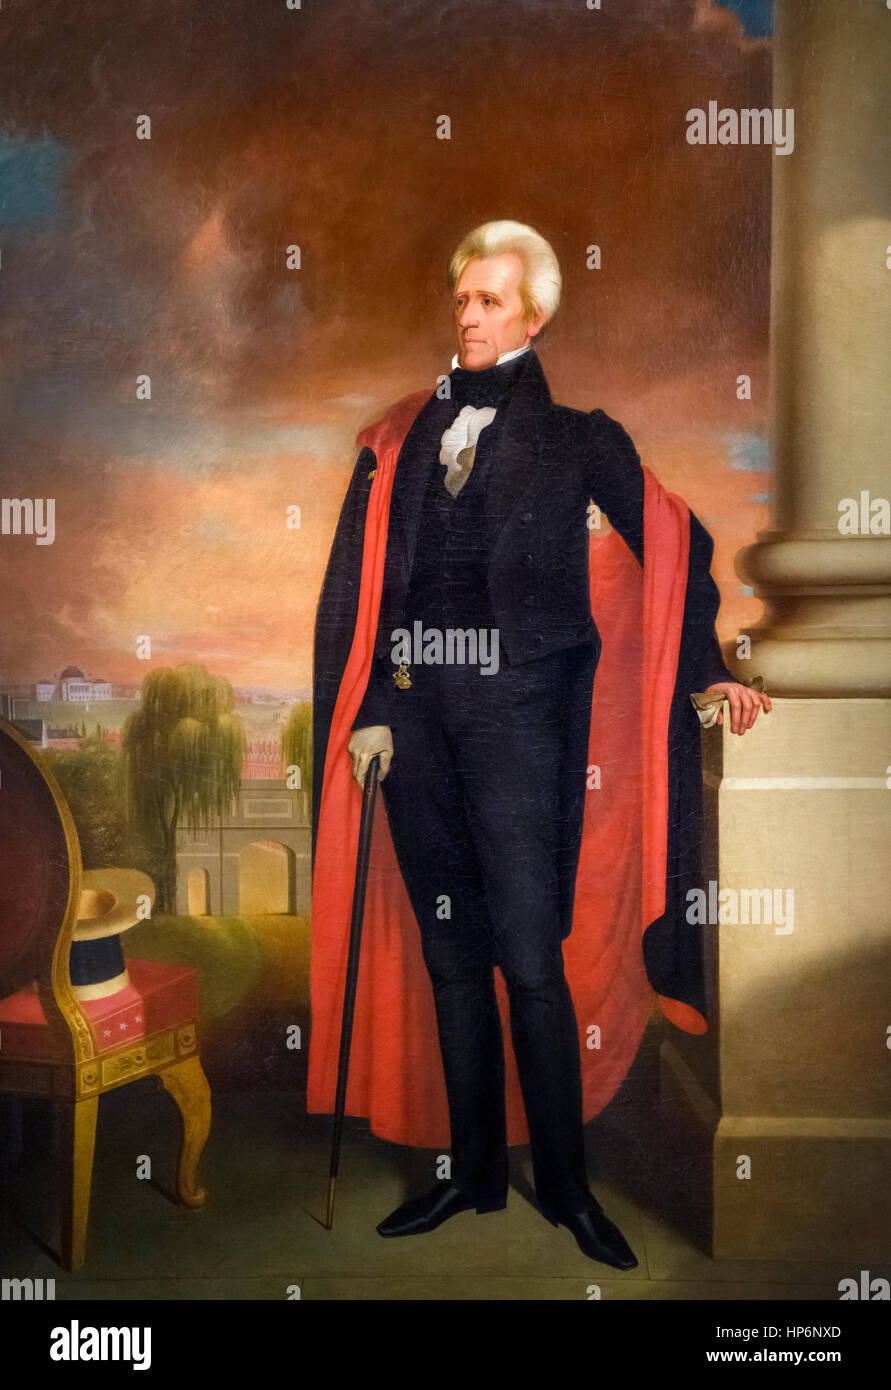 Andrew Jackson (1767-1845), portrait of the 7th president of the United States,  by Ralph E W Earl,oil on canvas, - Stock Image